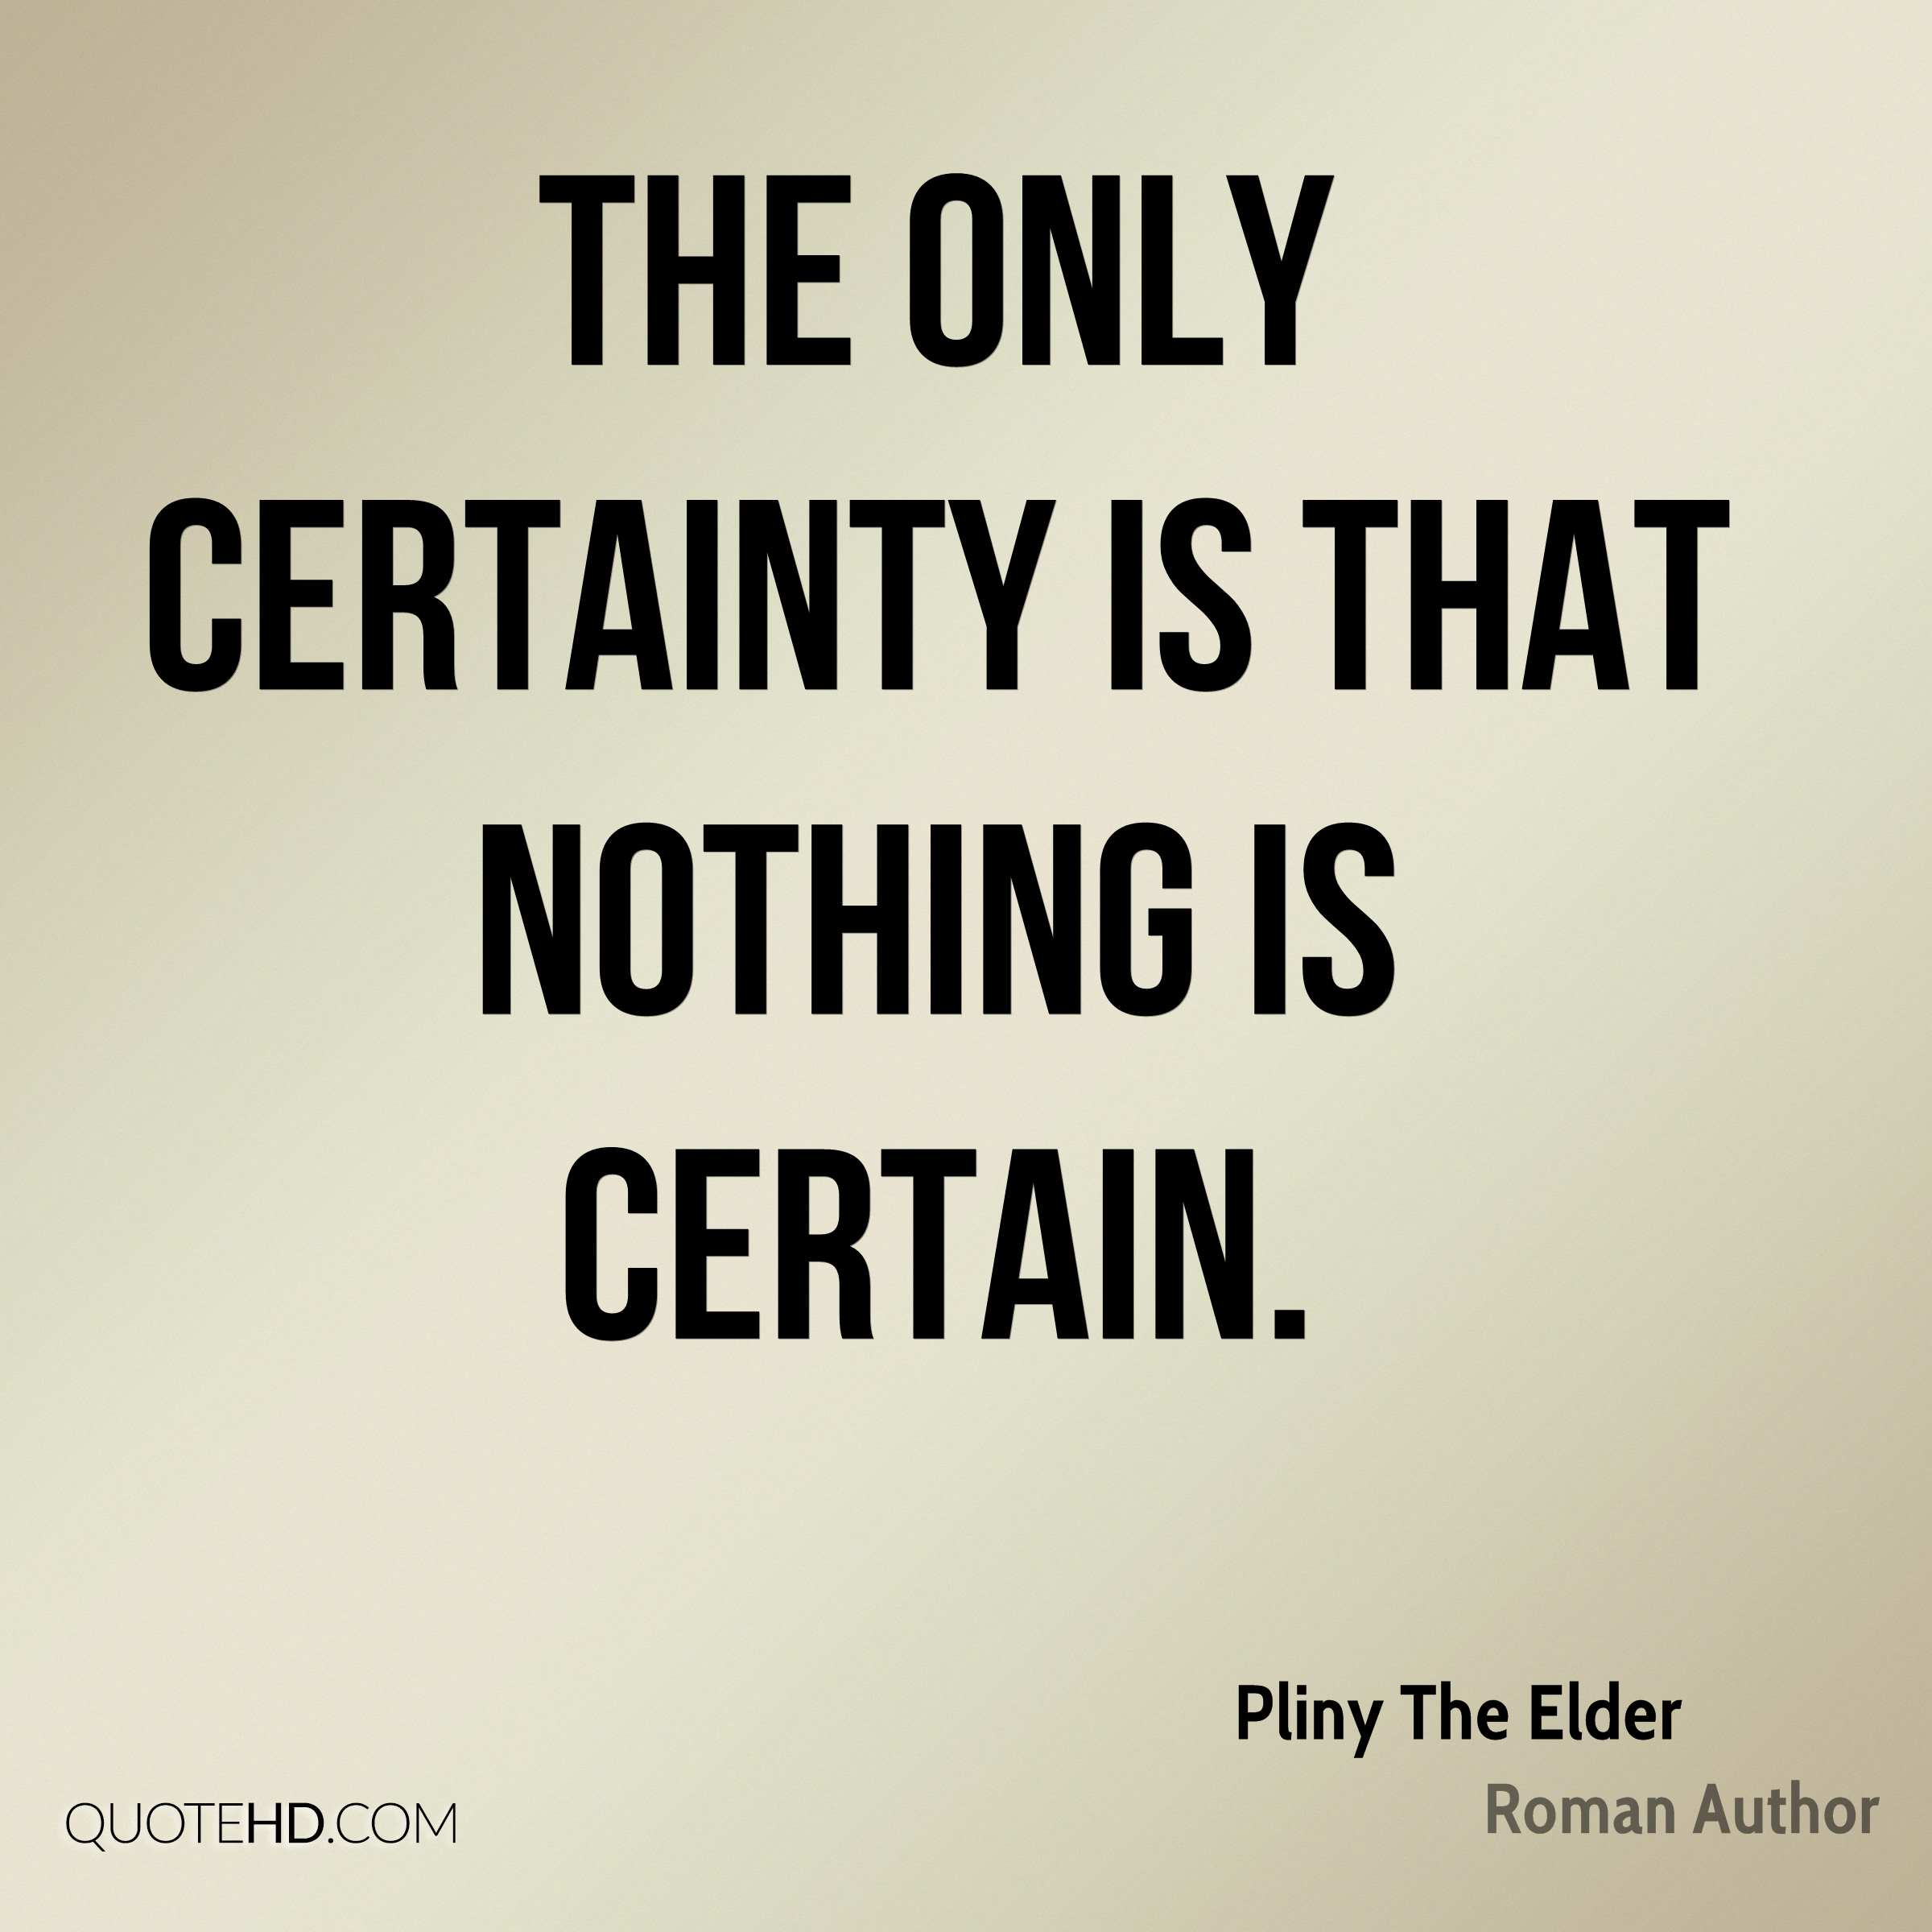 The only certainty is that nothing is certain.